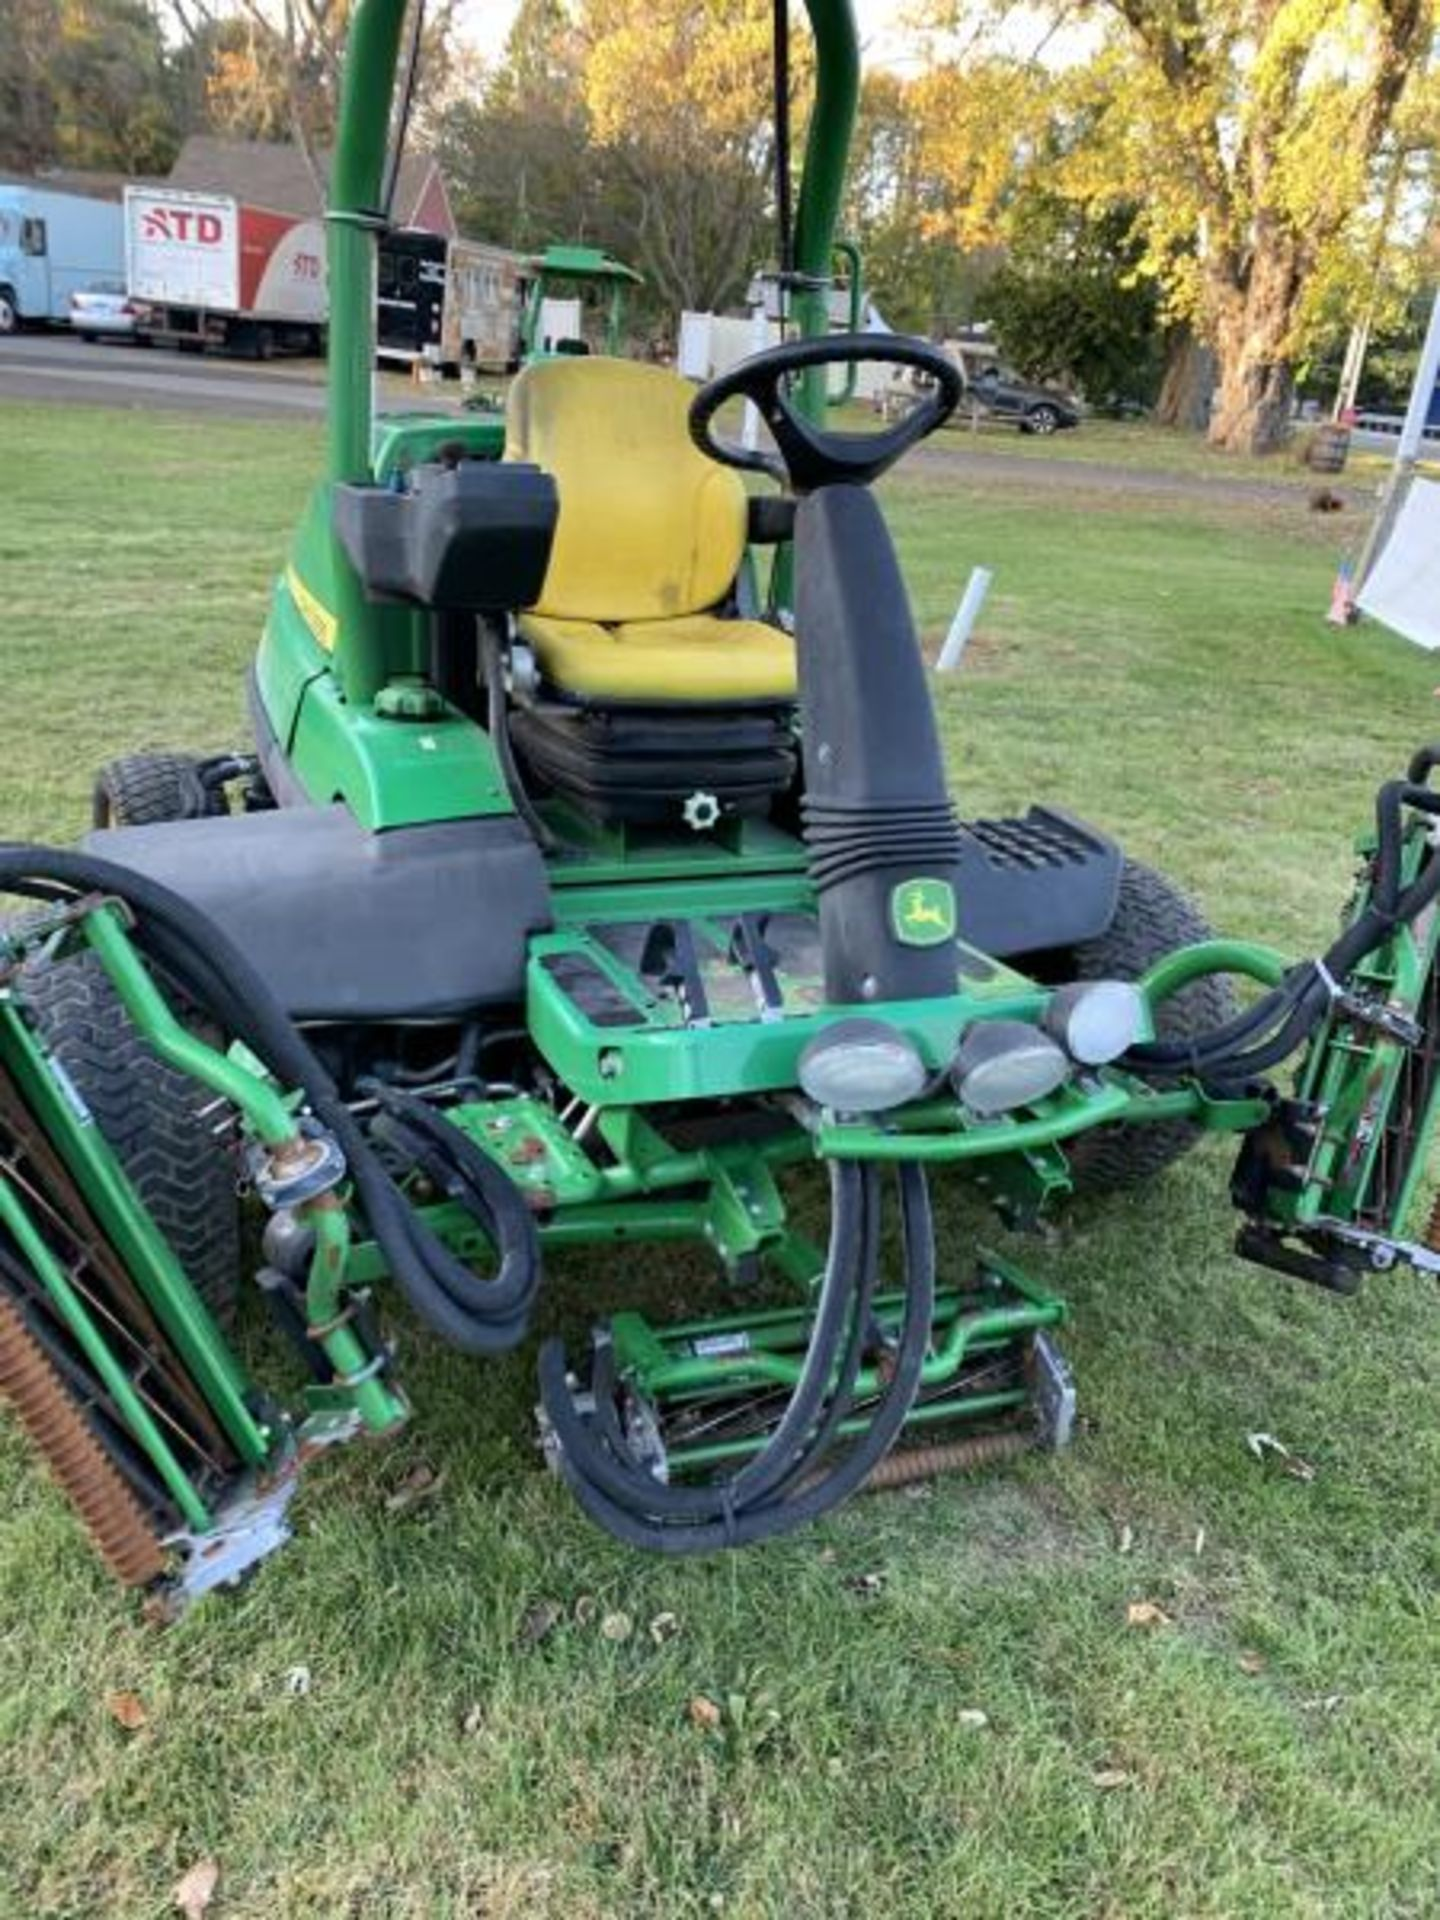 2016 John Deere 7500A Precision Cut 2WD T4, 2,355 Hours, SN: 1TC750AVLGR030141 - Image 8 of 17